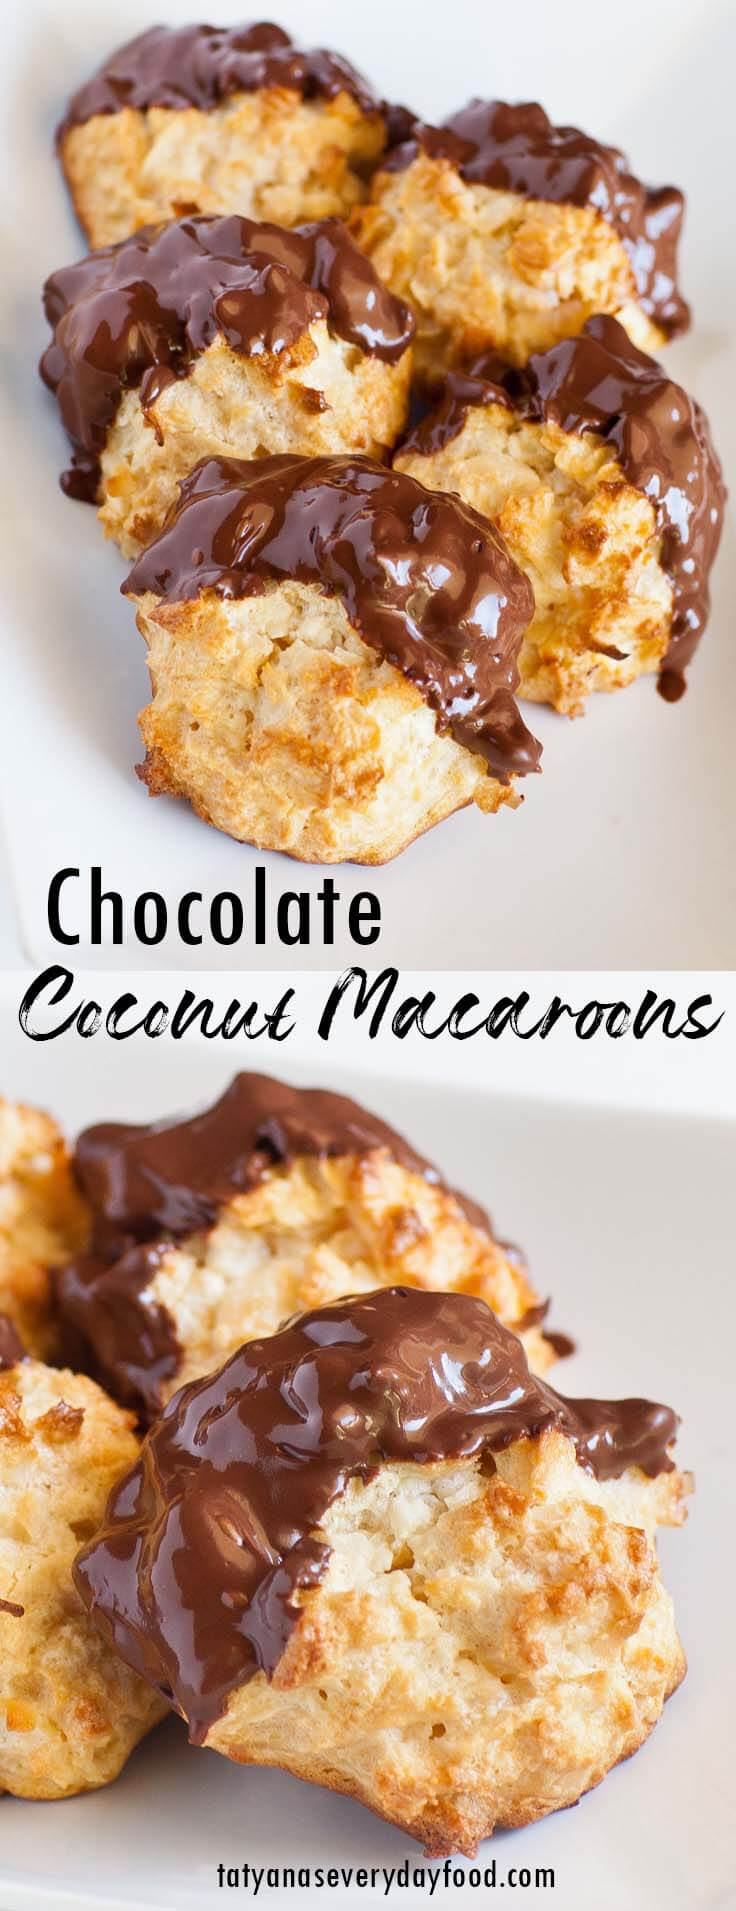 Chocolate Coconut Macaroons video recipe